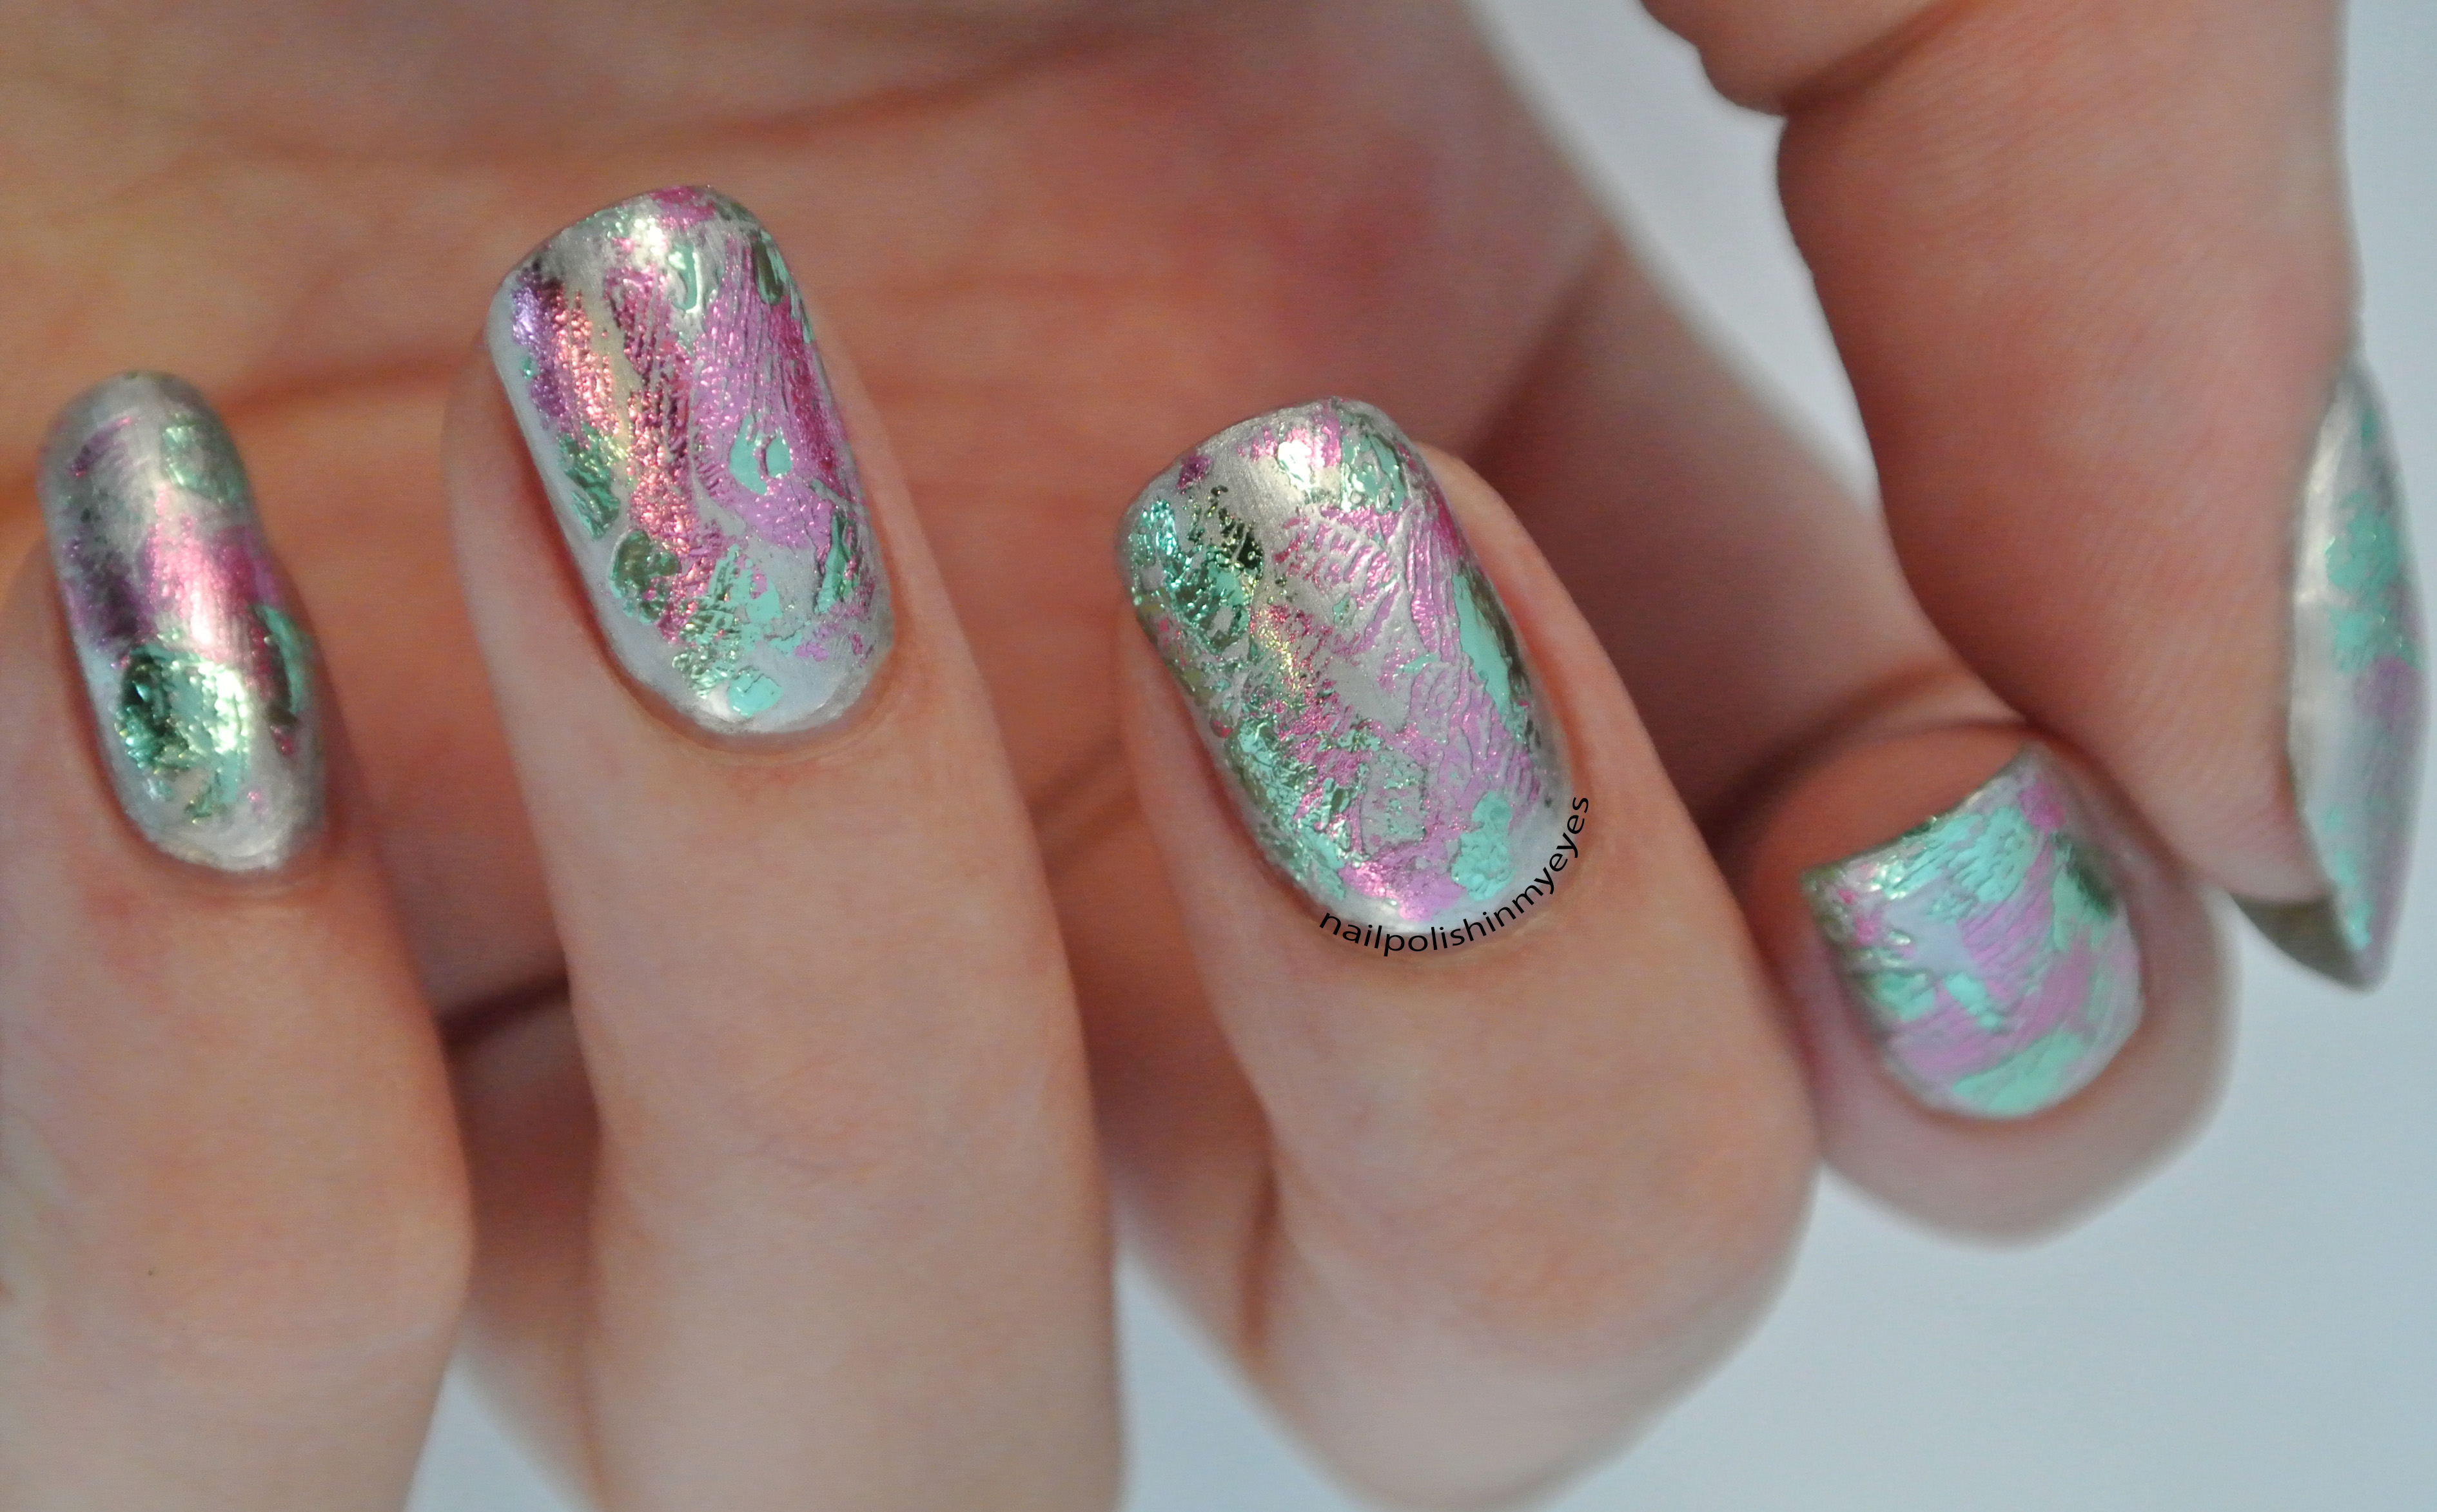 How to do a manicure with foil?